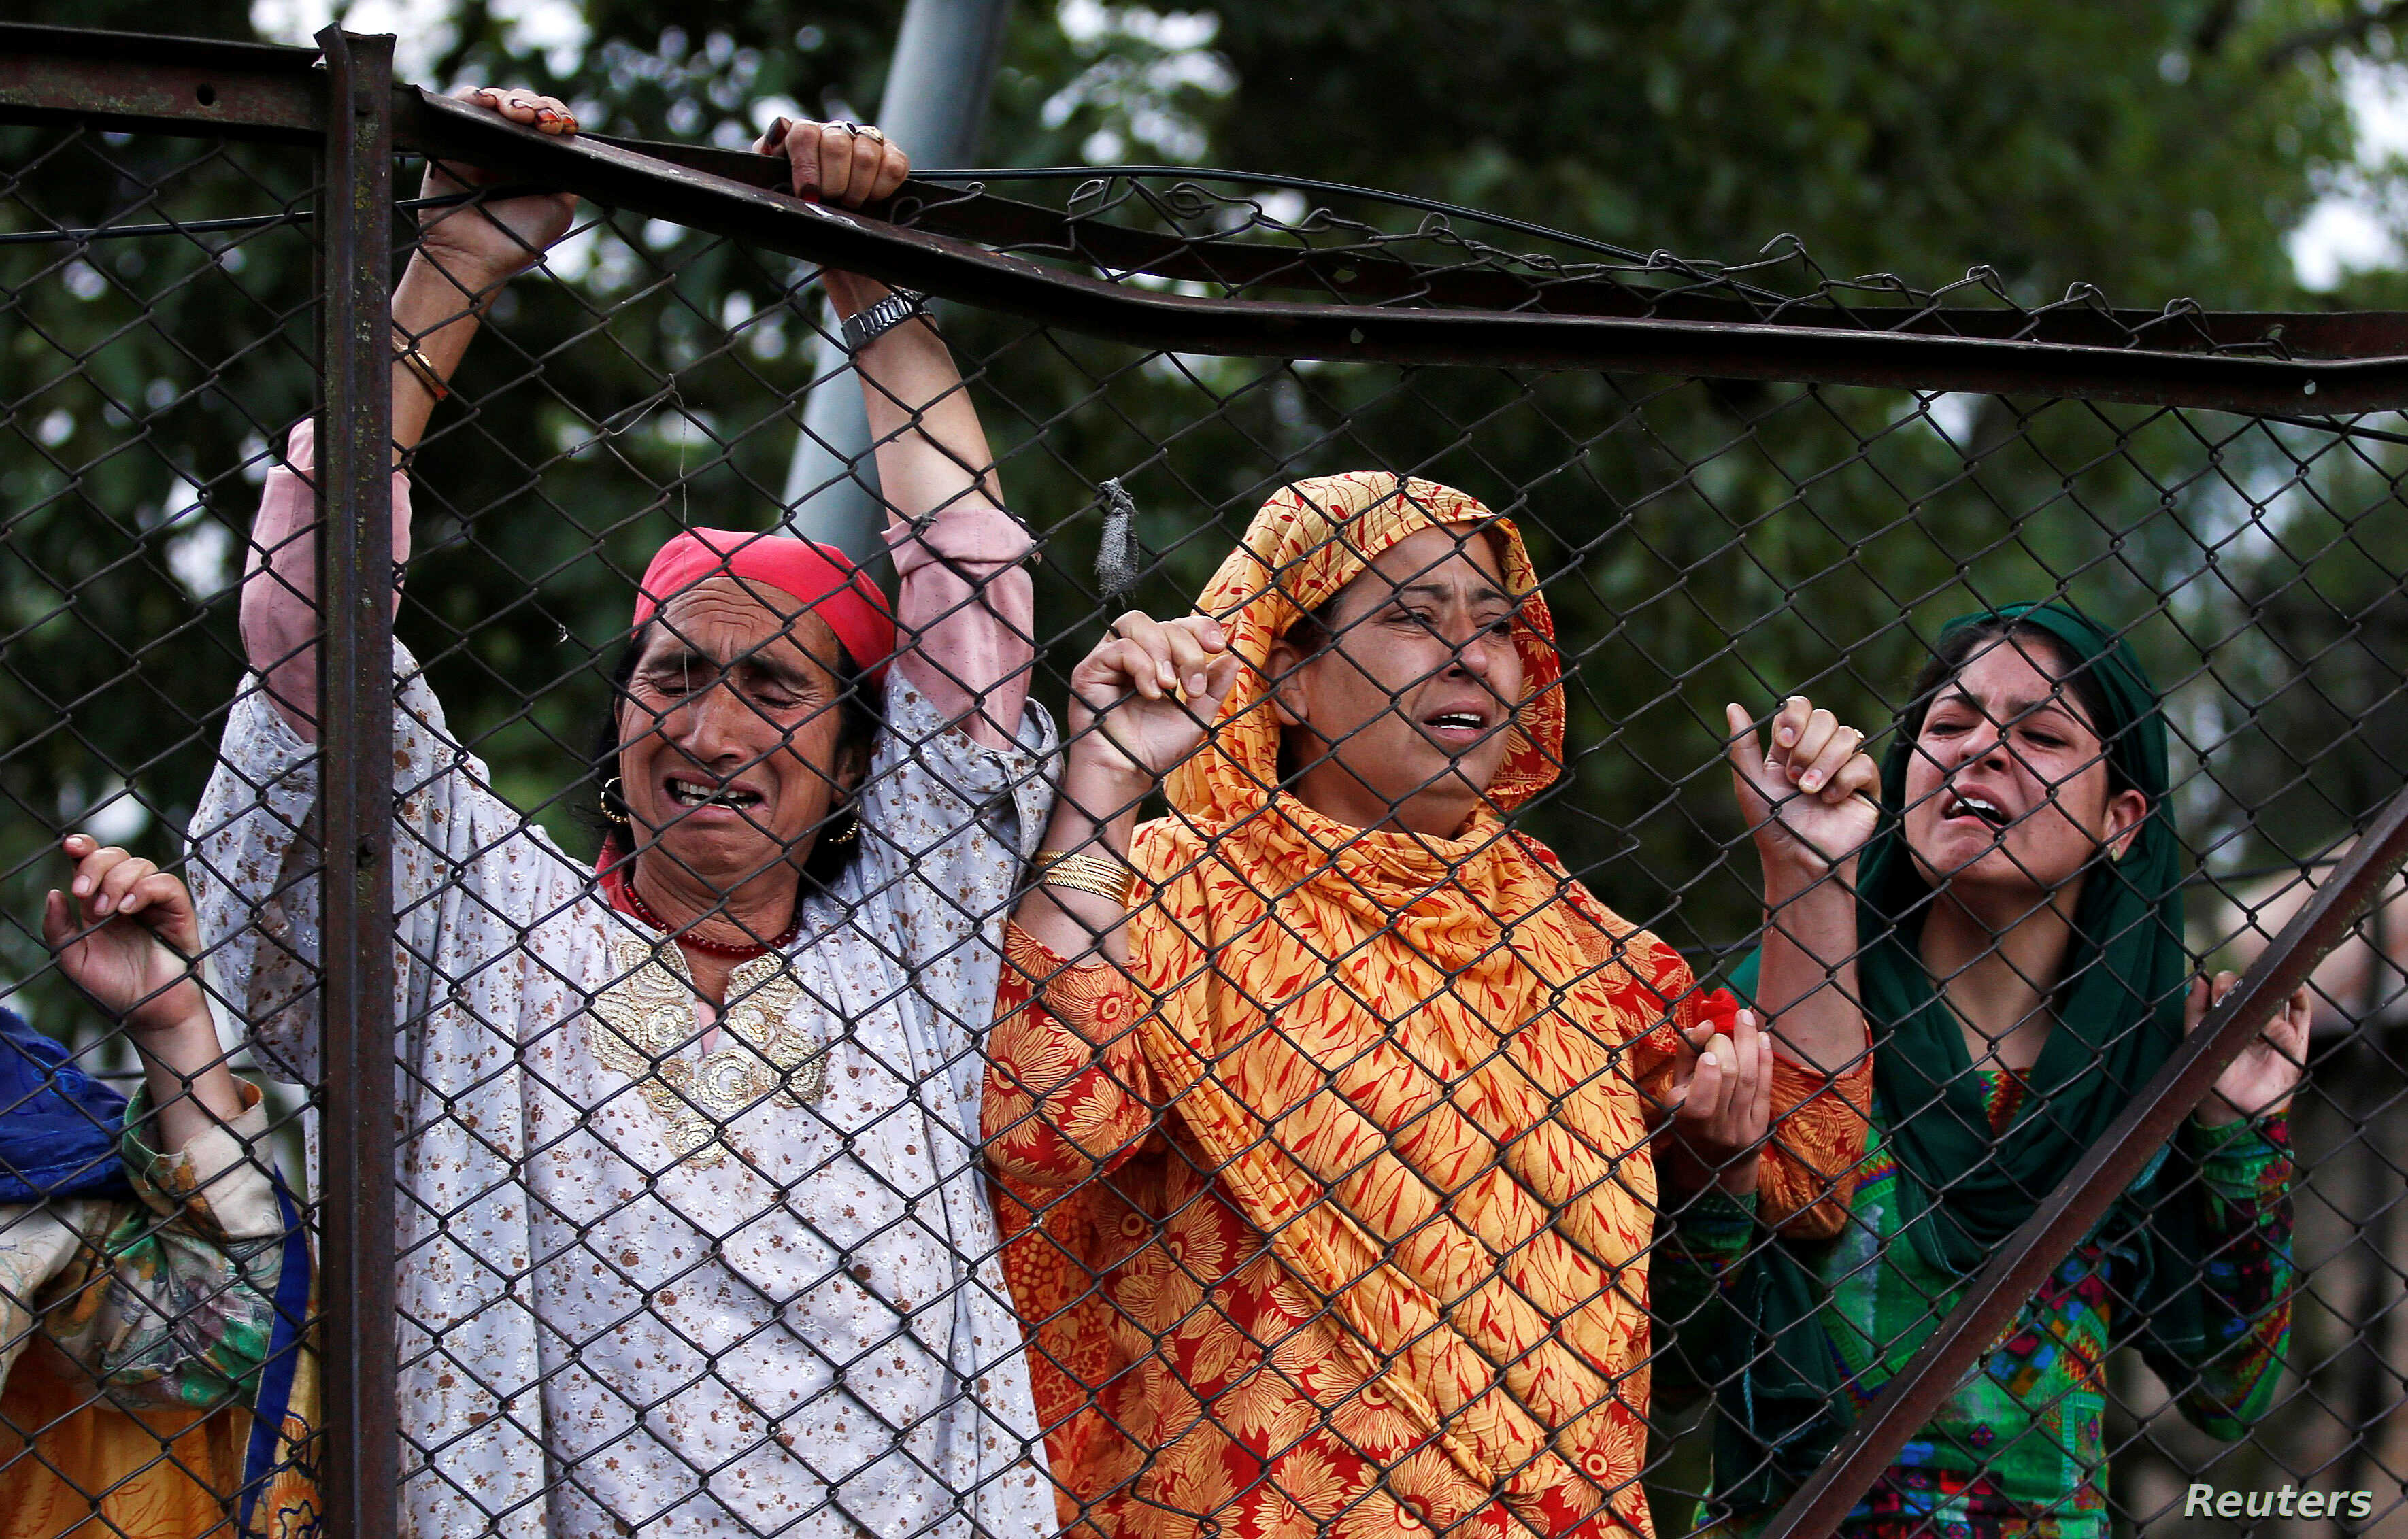 Kashmiri women mourn the death of Burhan Wani, a separatist militant leader, during his funeral in Tral, south of Srinagar, July 9, 2016.